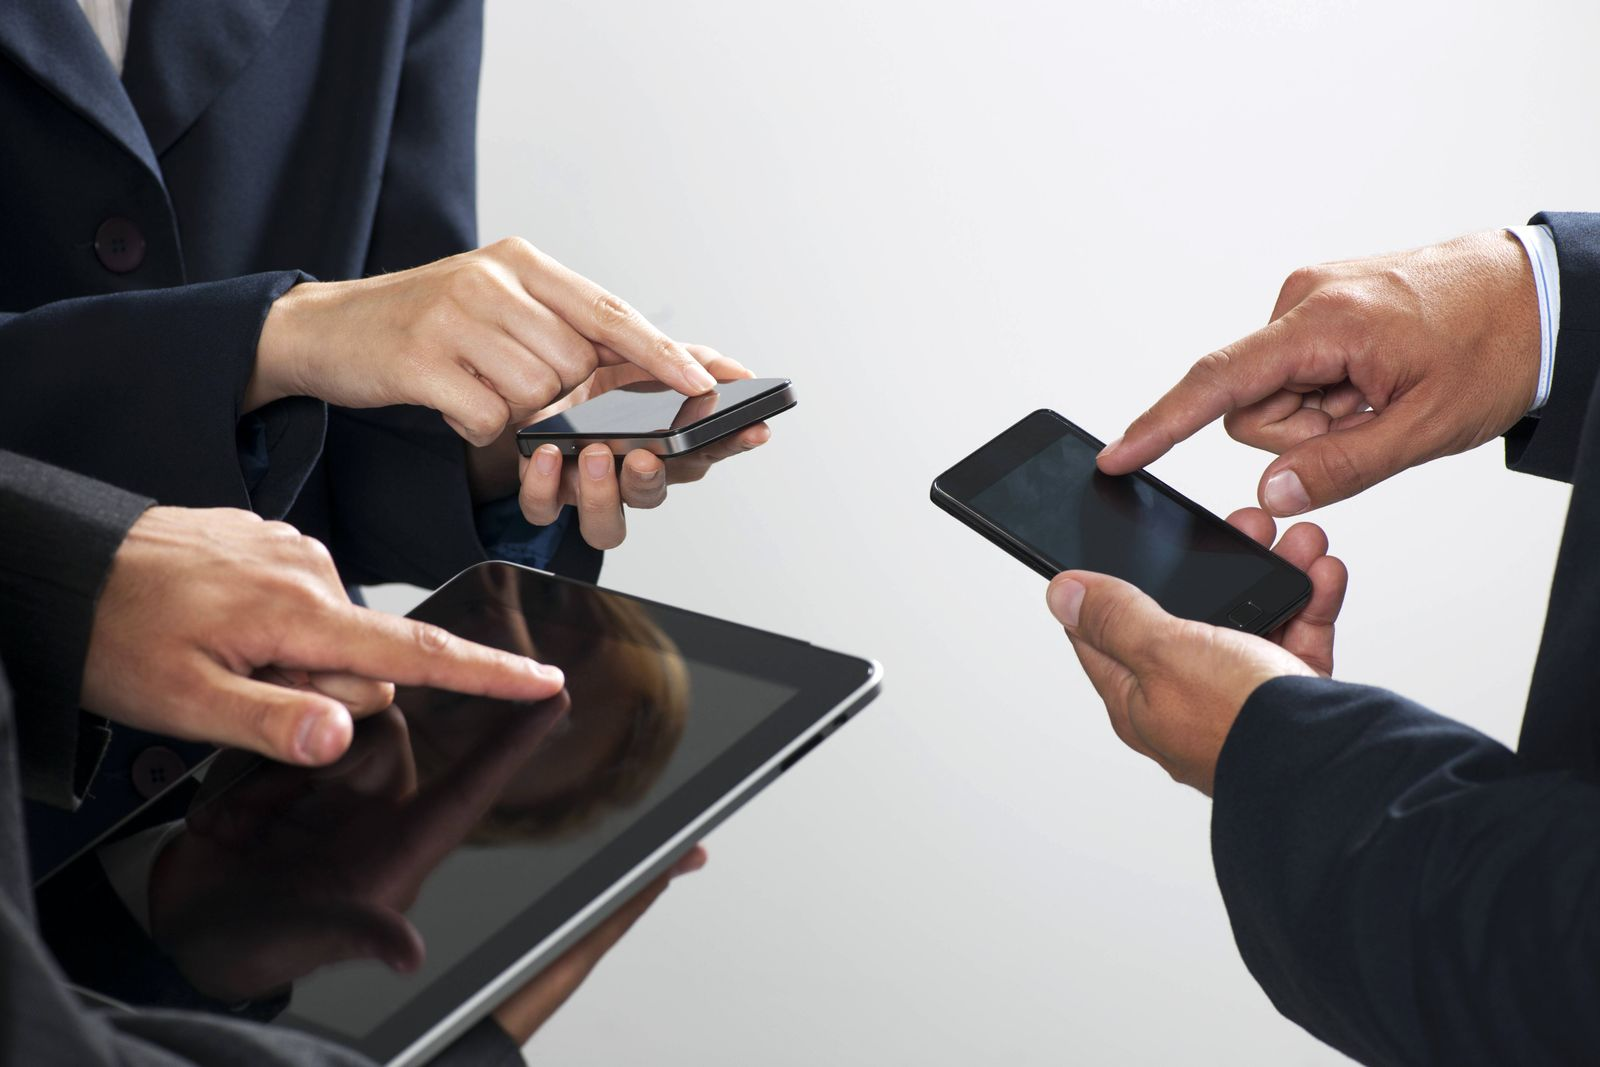 Colleagues exchanging information with smartphones and digital tablet cropped PUBLICATIONxINxGERxSU